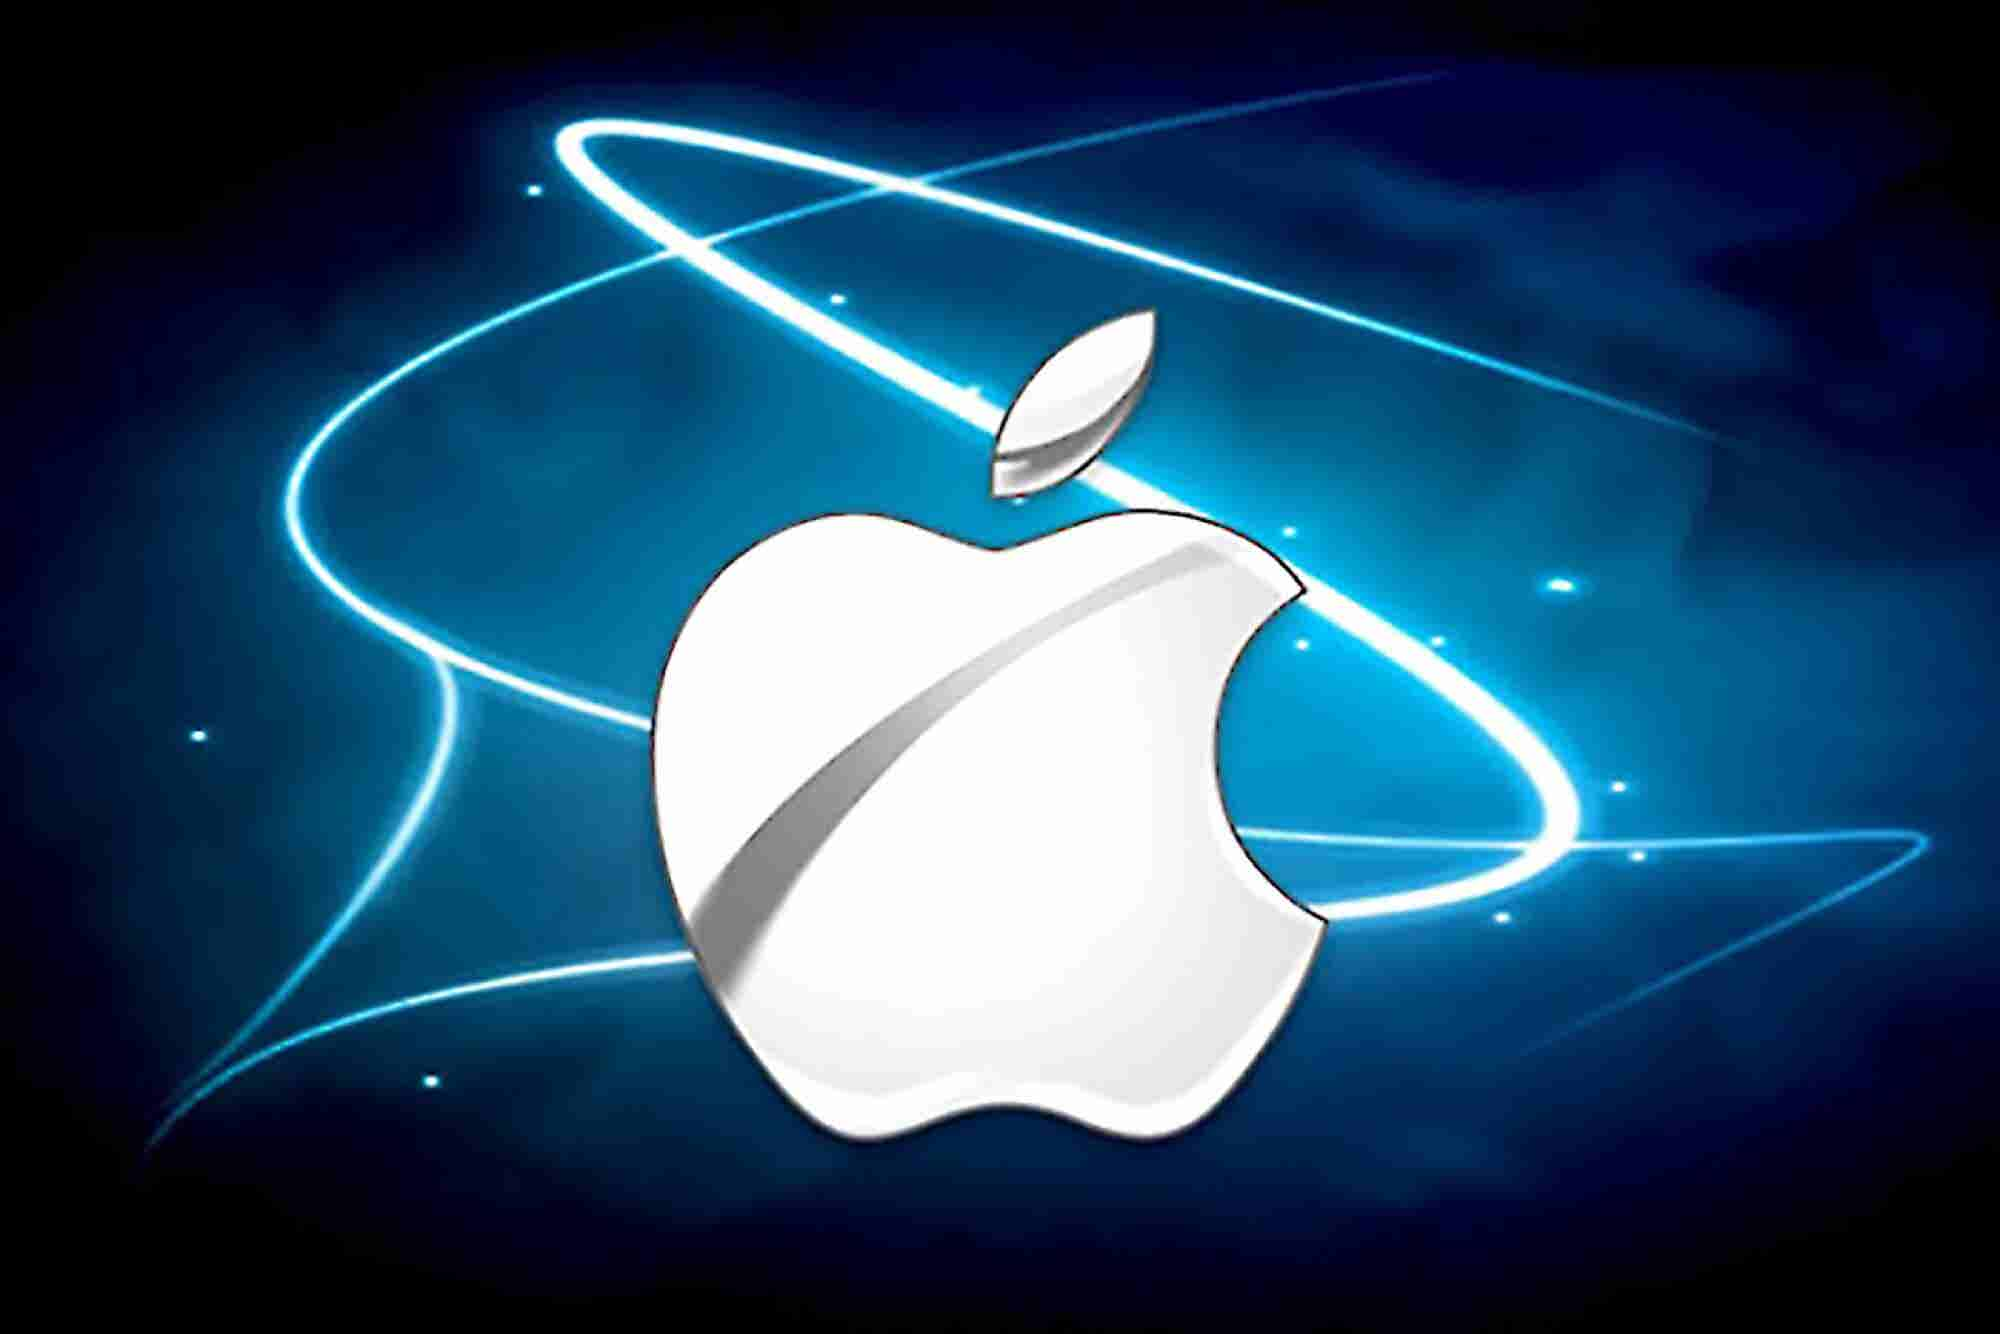 Apple Surpasses Coke to Become World's Most Valuable Brand